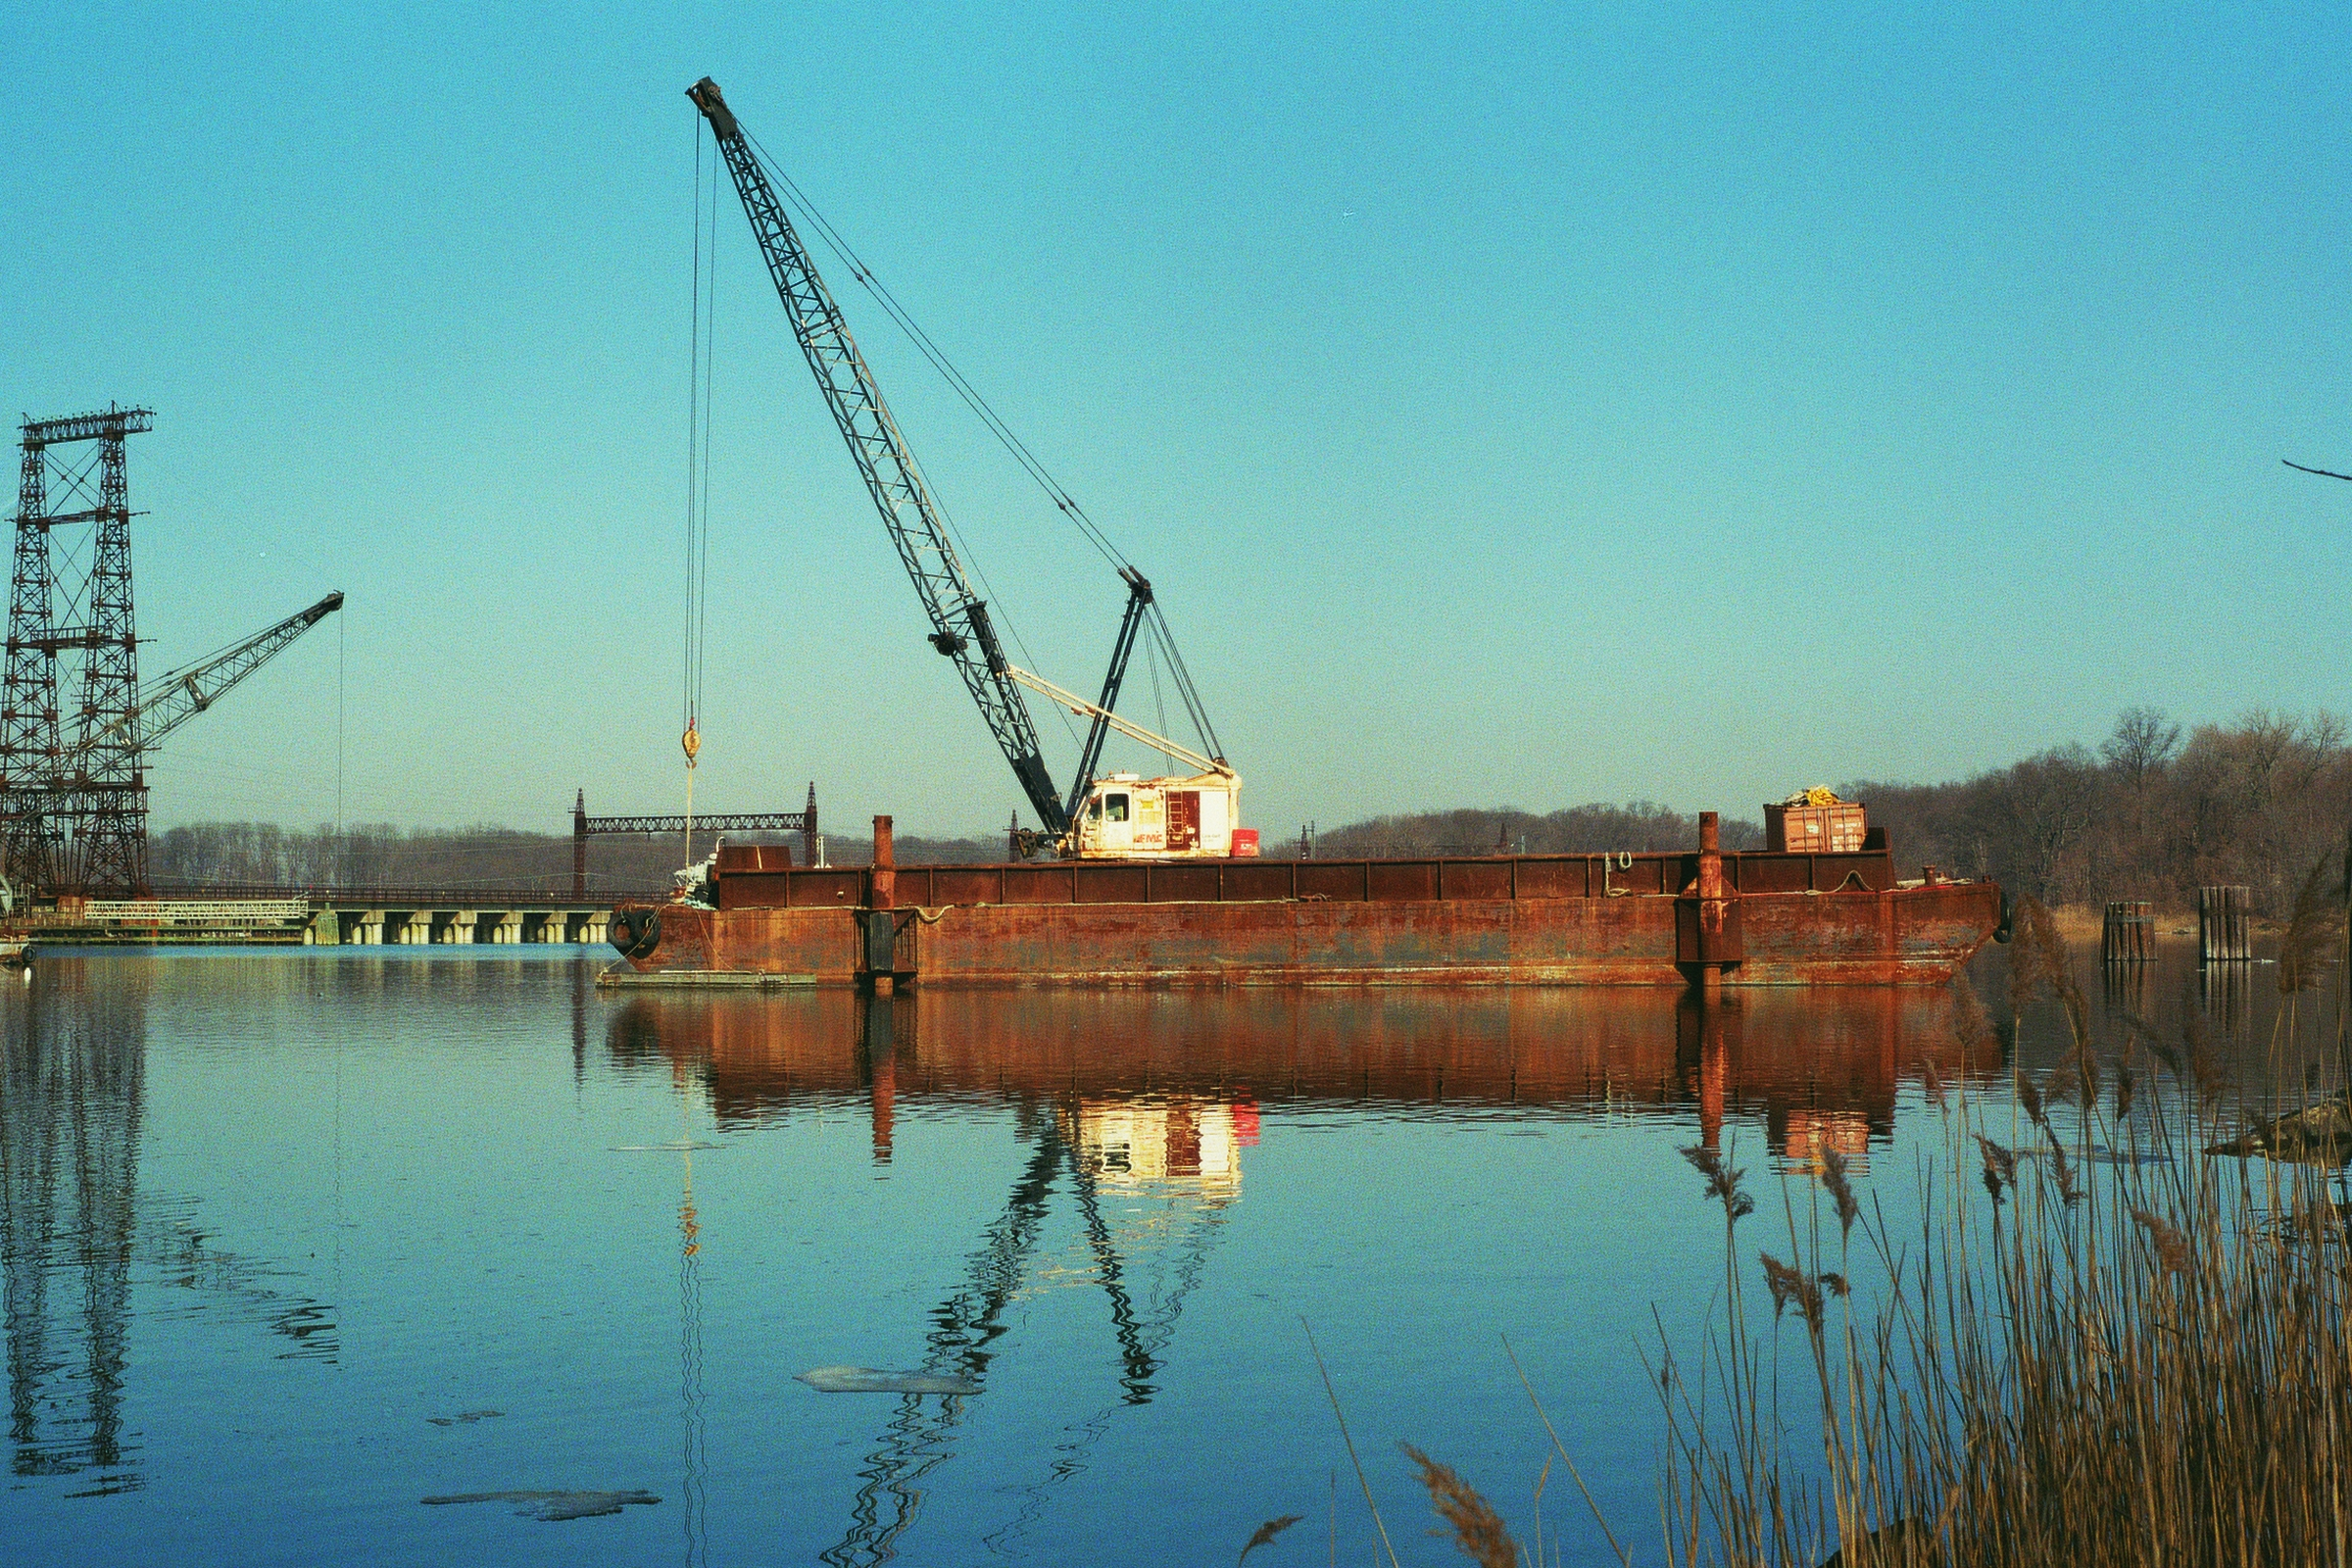 One of several rusted, abandoned ships in the Hutchinson River. The Bronx.  Kodak Ultra Max 400. Pentax K1000. Fletcher Berryman 2019.